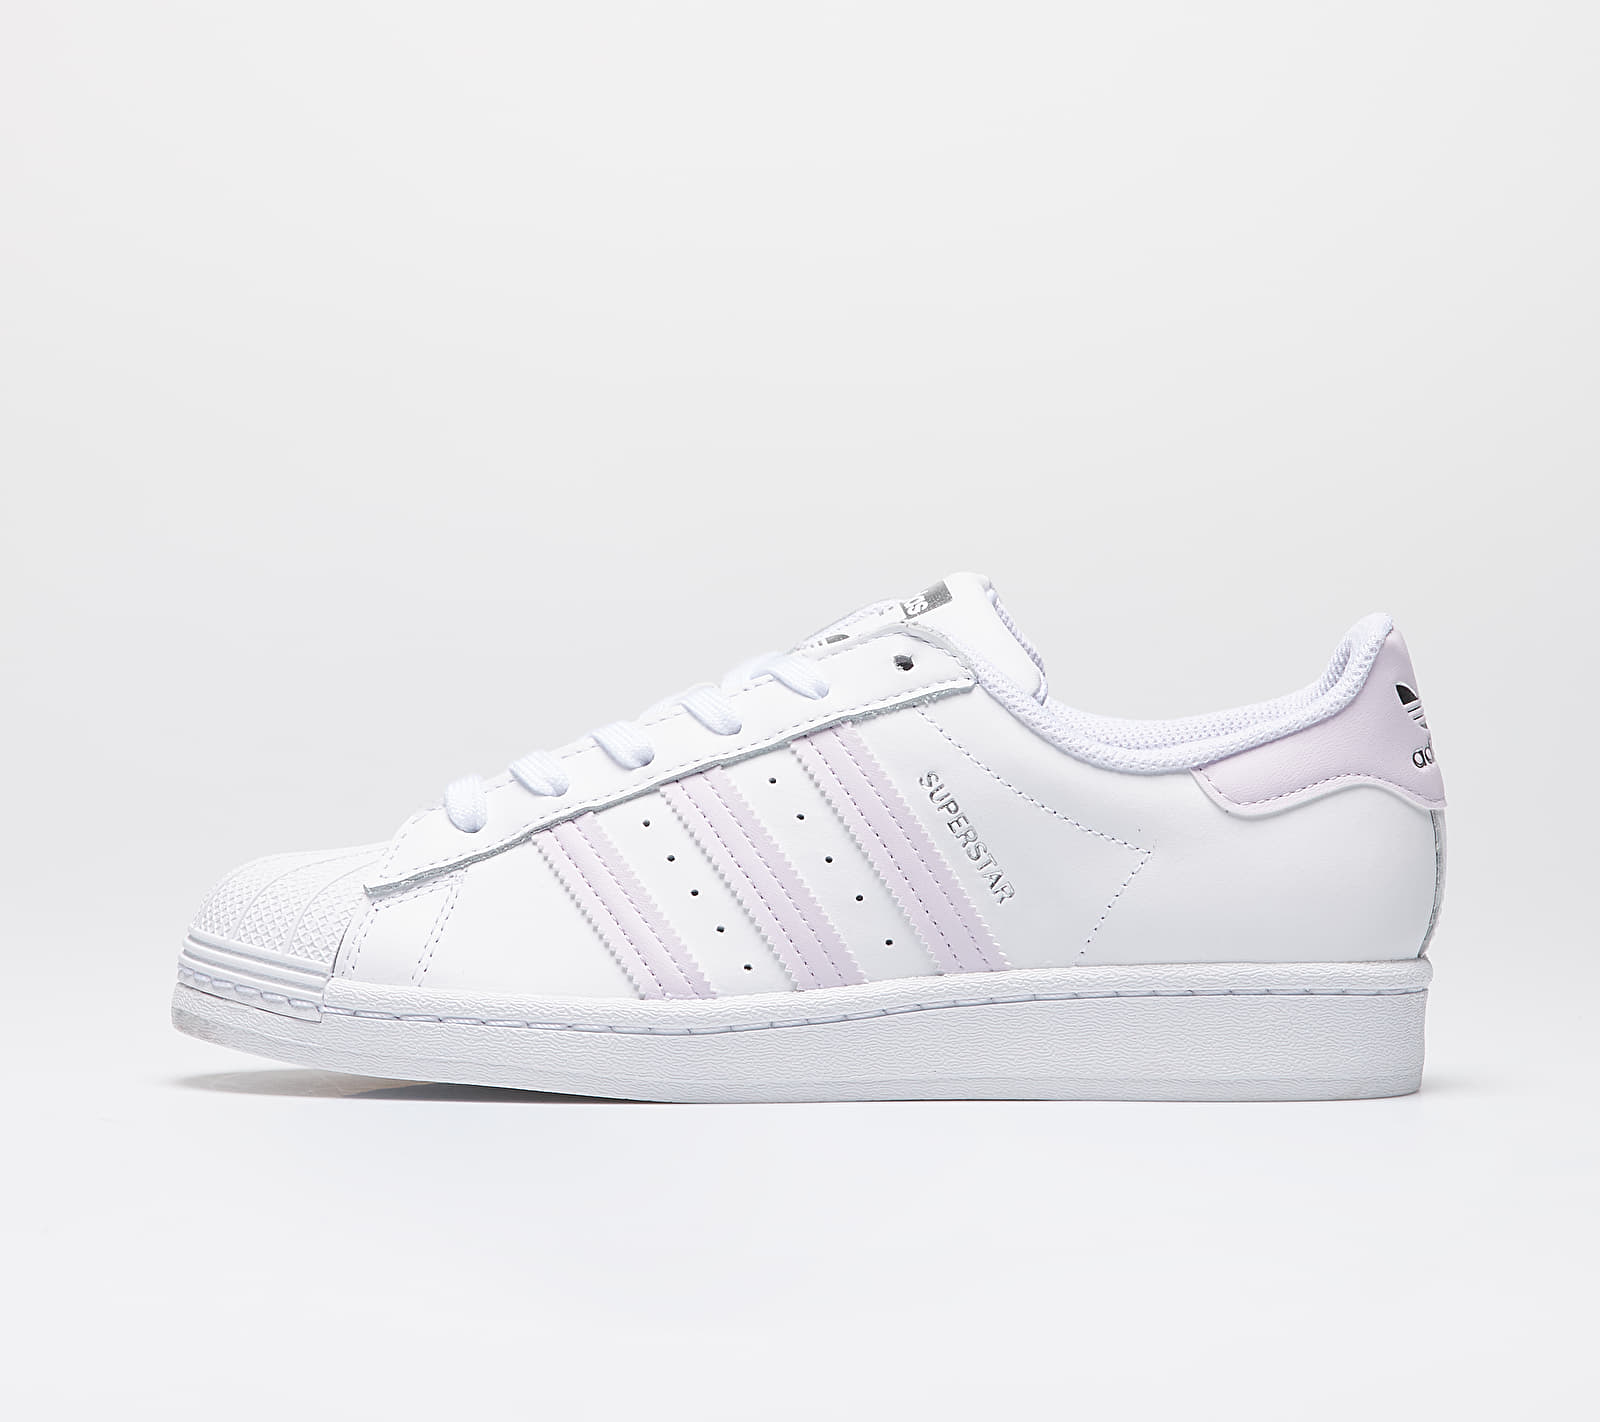 adidas Superstar W Ftw White/ Purple Tint/ Silver Metalic EUR 38